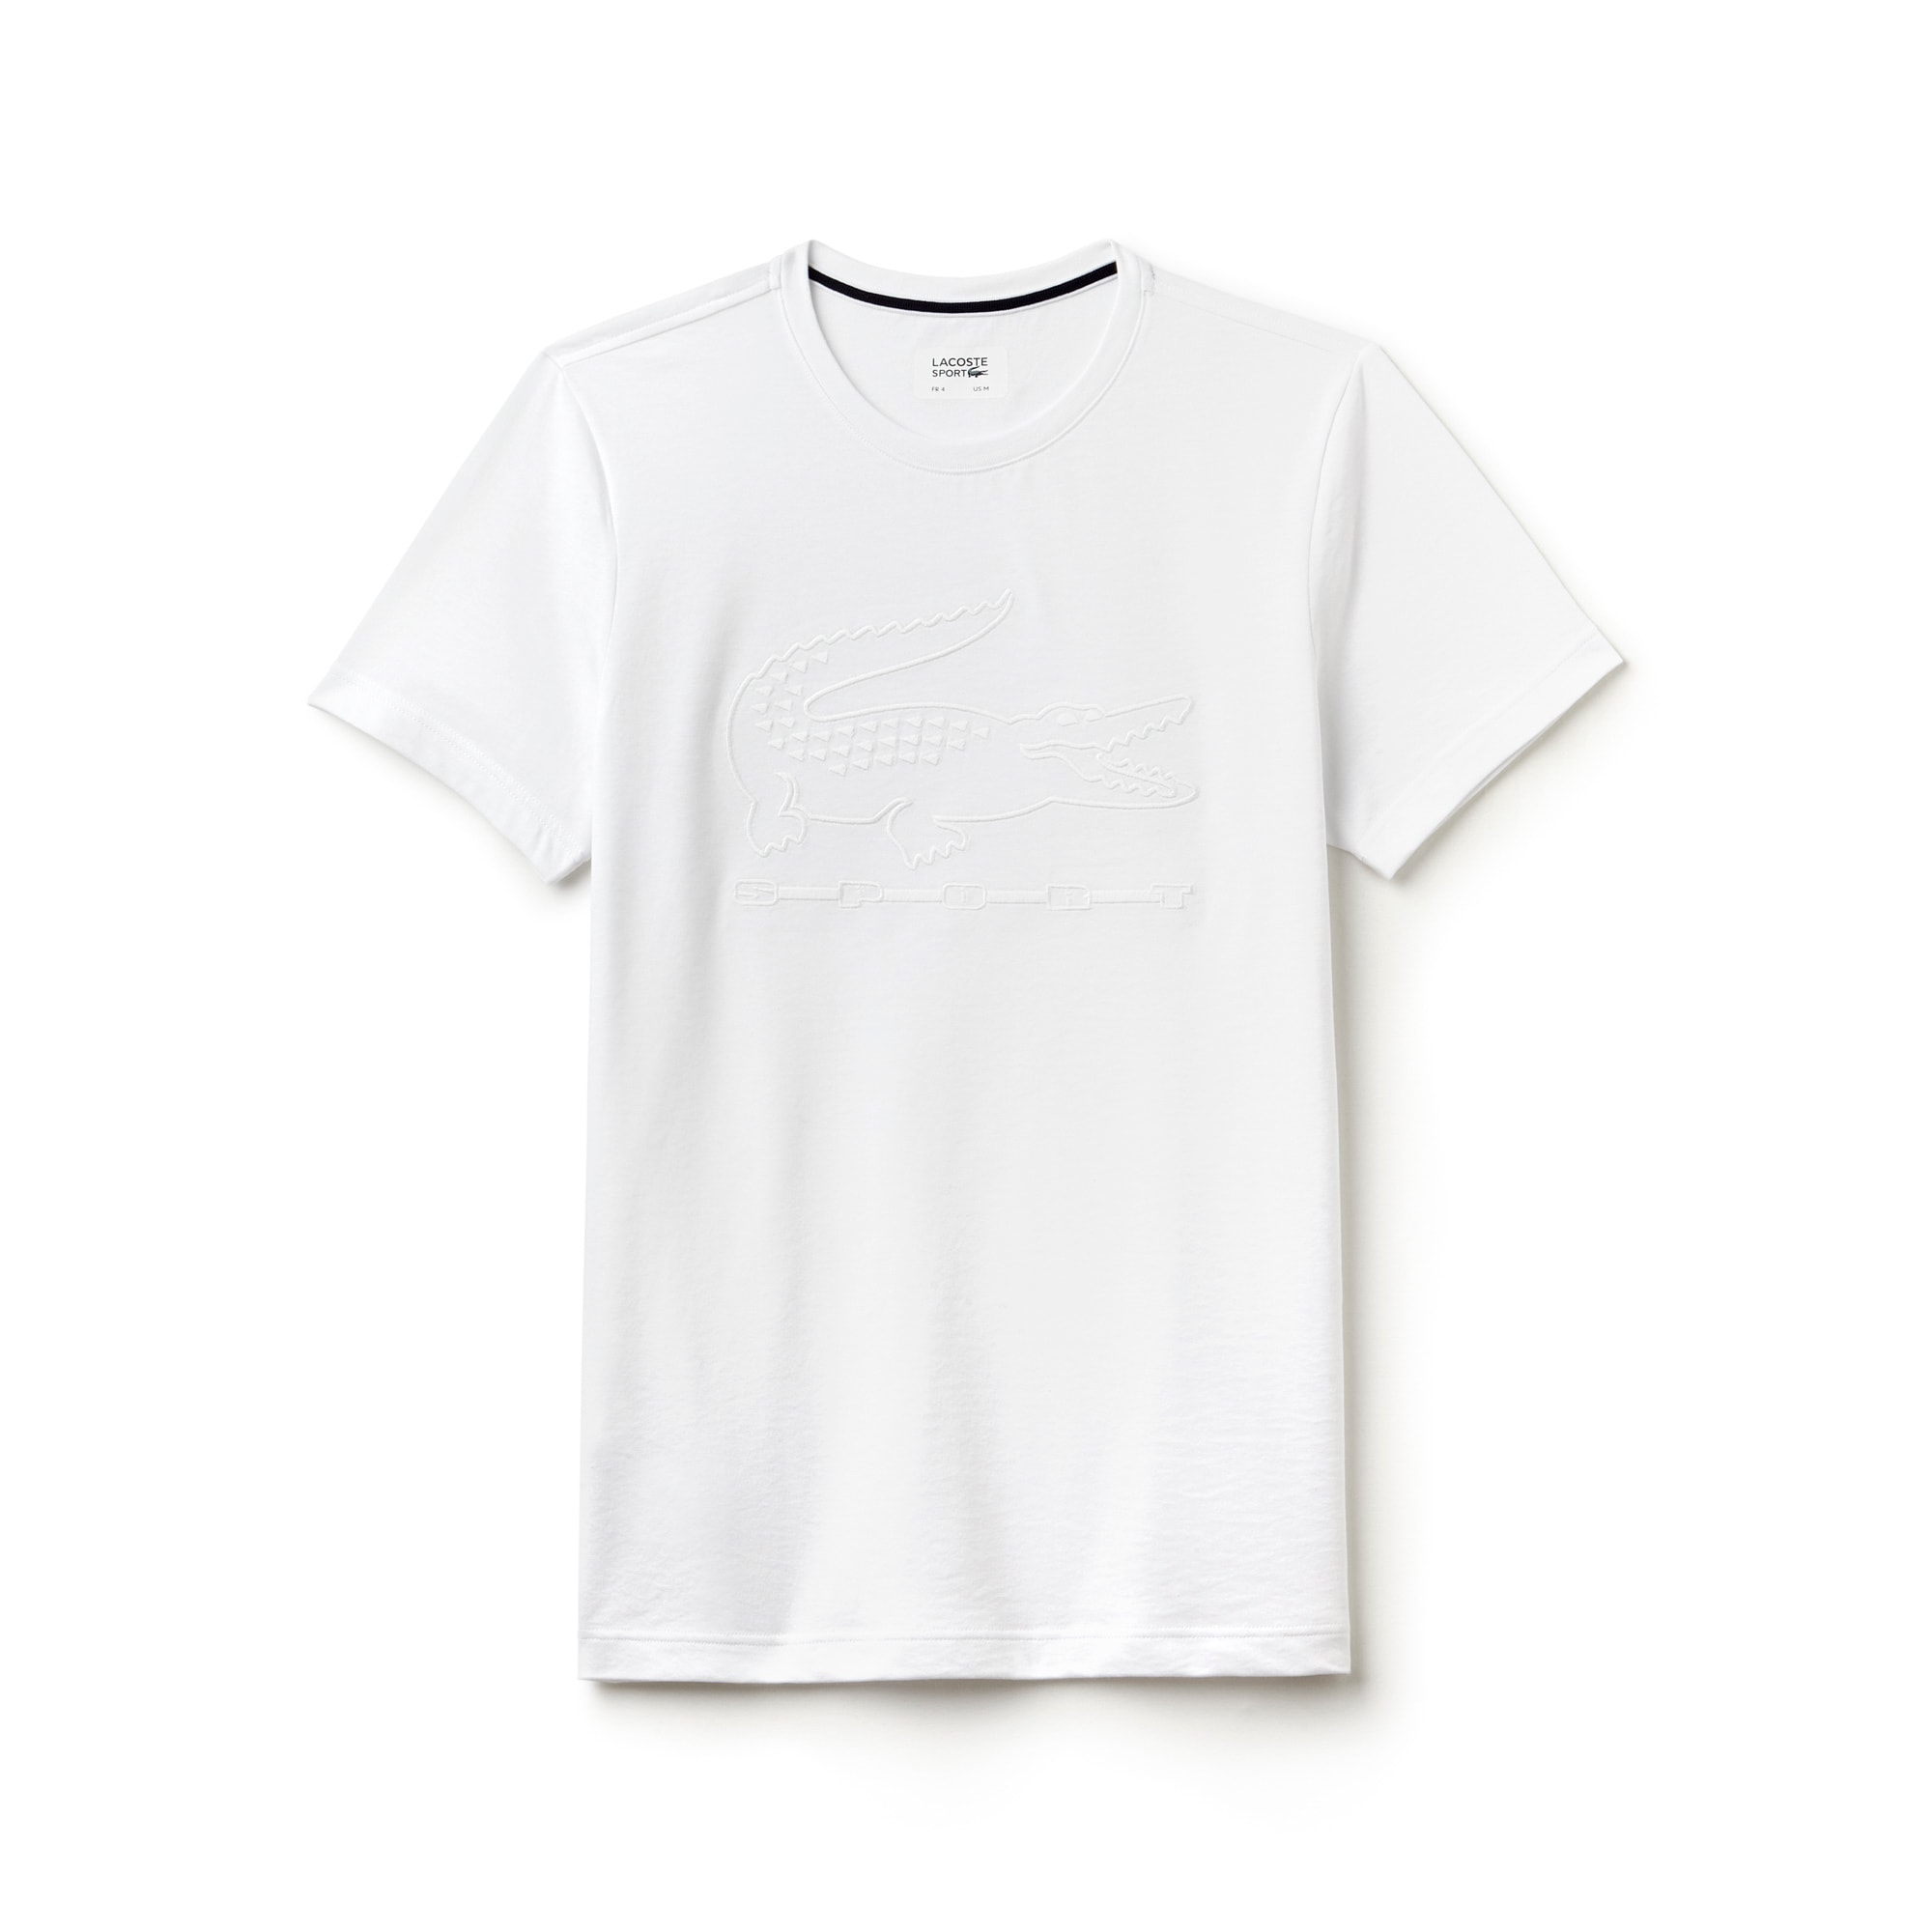 Men's  SPORT Tennis Embroidery Tech Jersey T-shirt